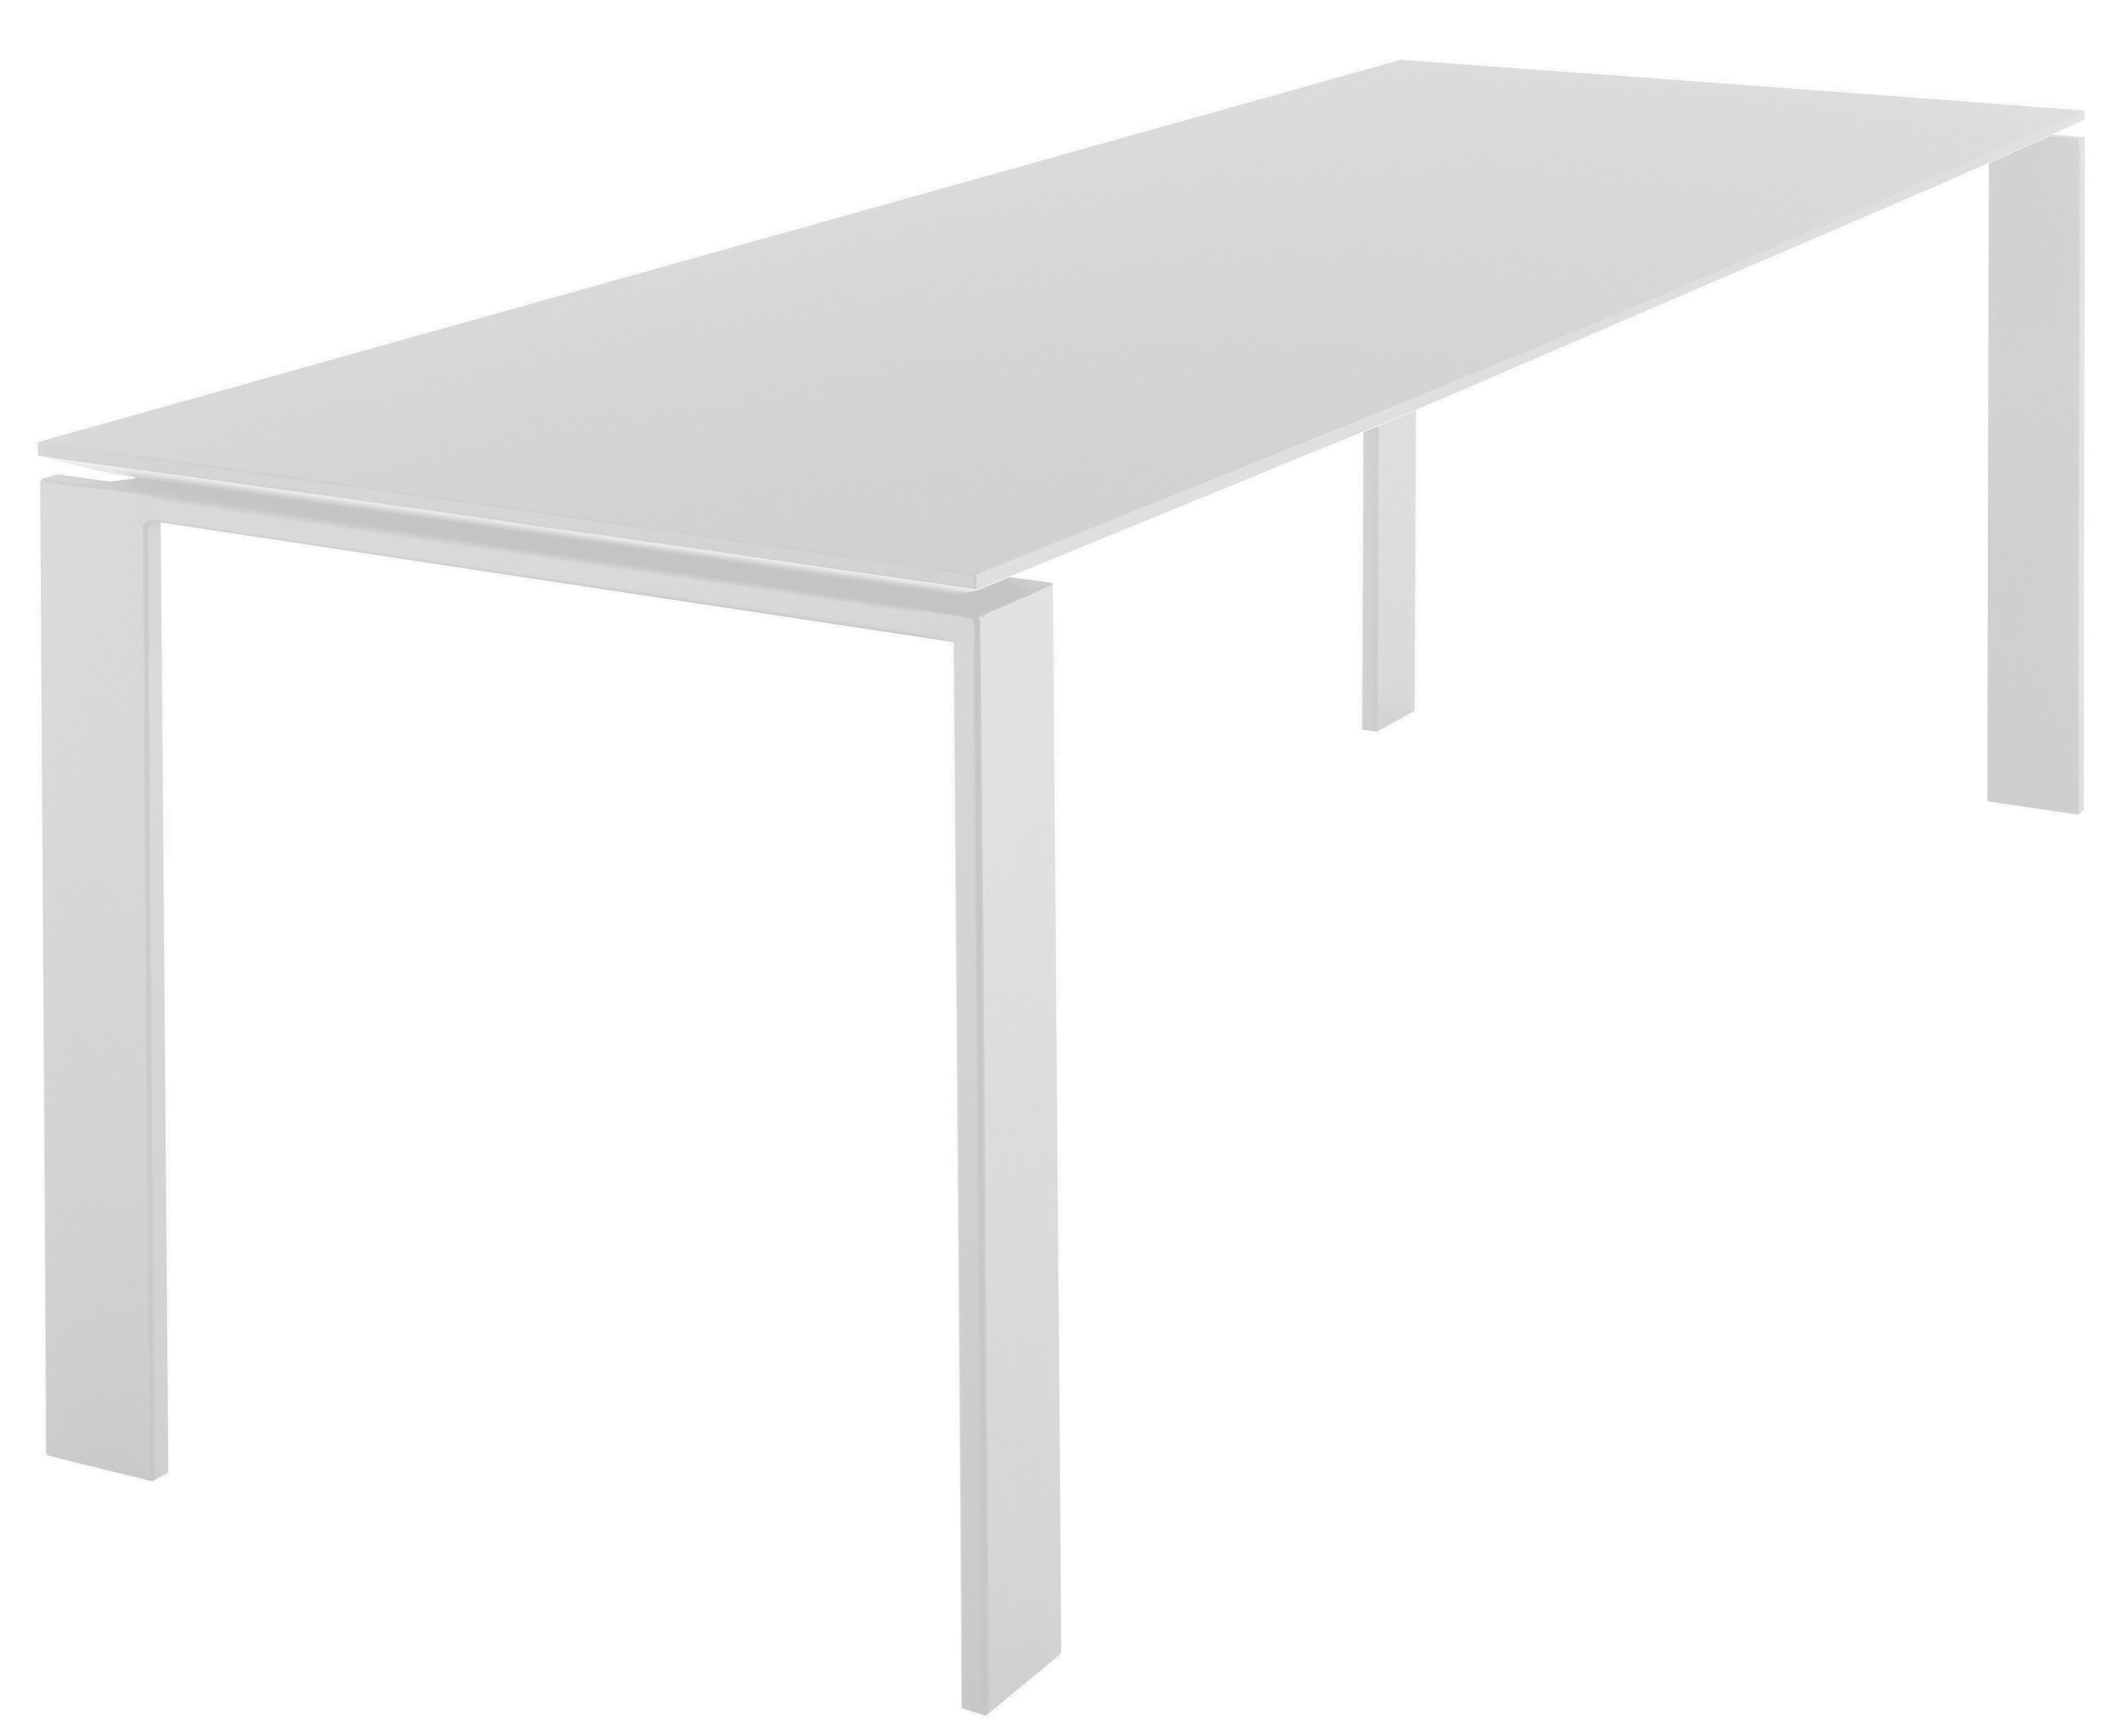 Furniture - Dining Tables - Four Table - White - L 158 cm by Kartell - 158 cm - Laminate, Varnished steel